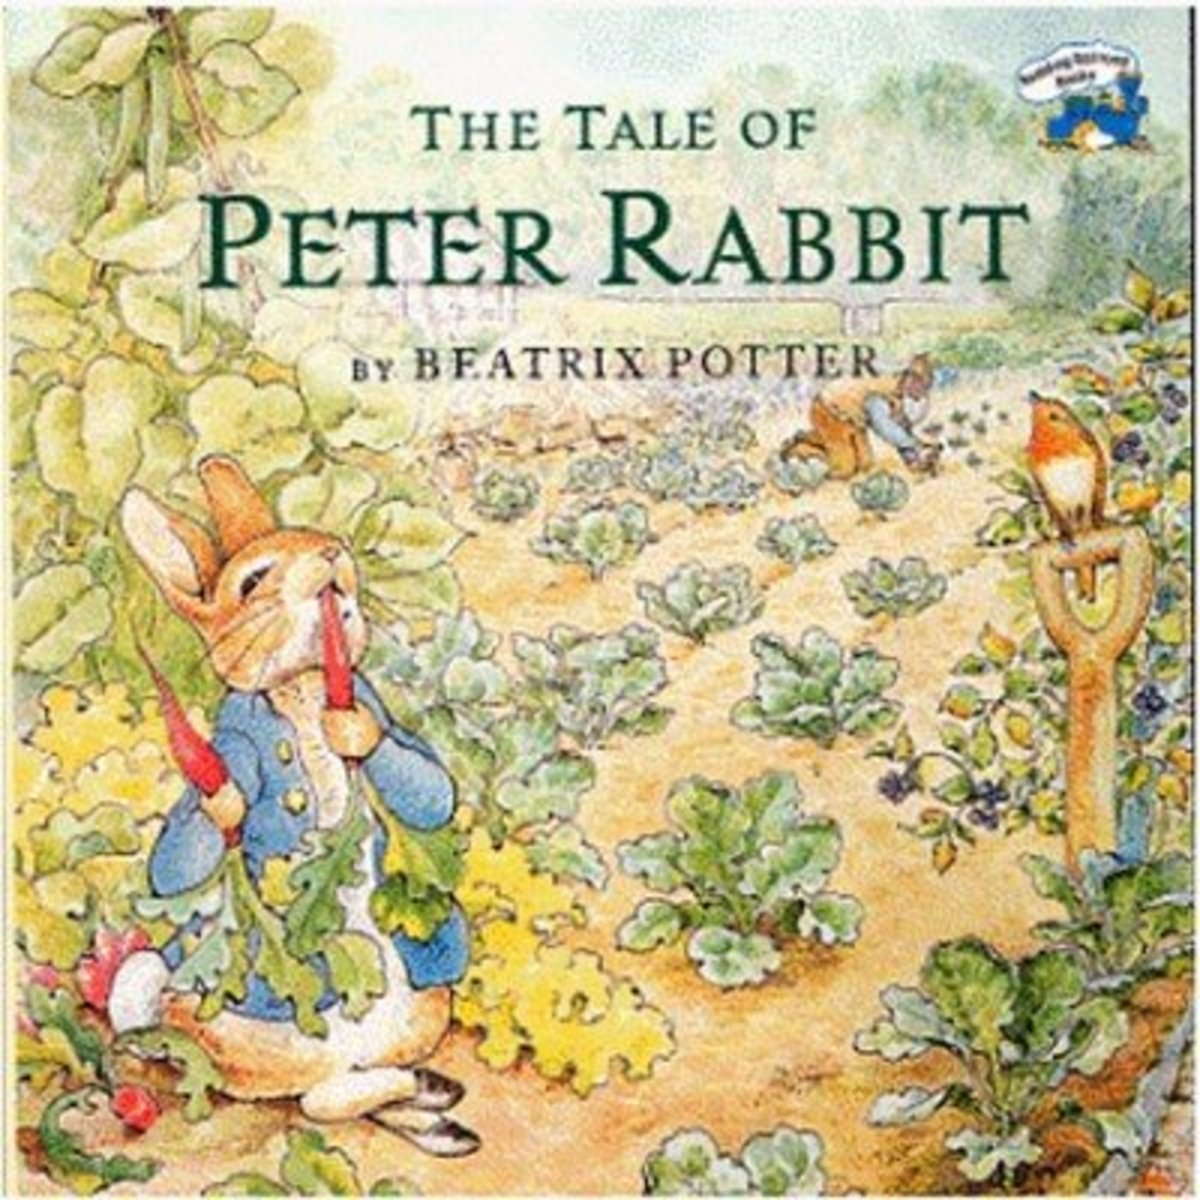 English Children's Writer and Illustrator Beatrix Potter and